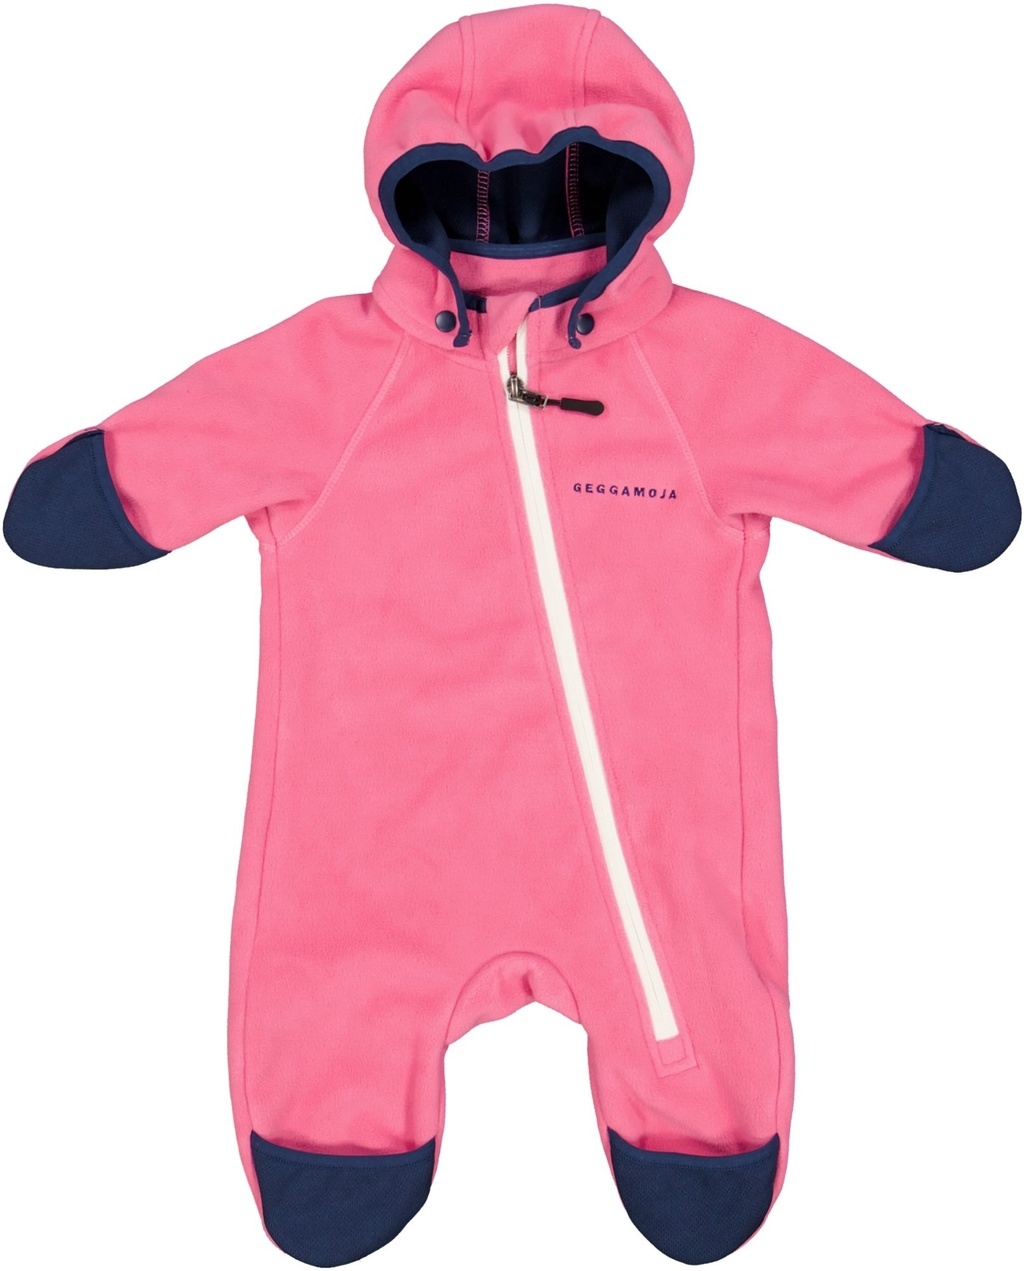 Vindfleeceoverall Rosa  74/80